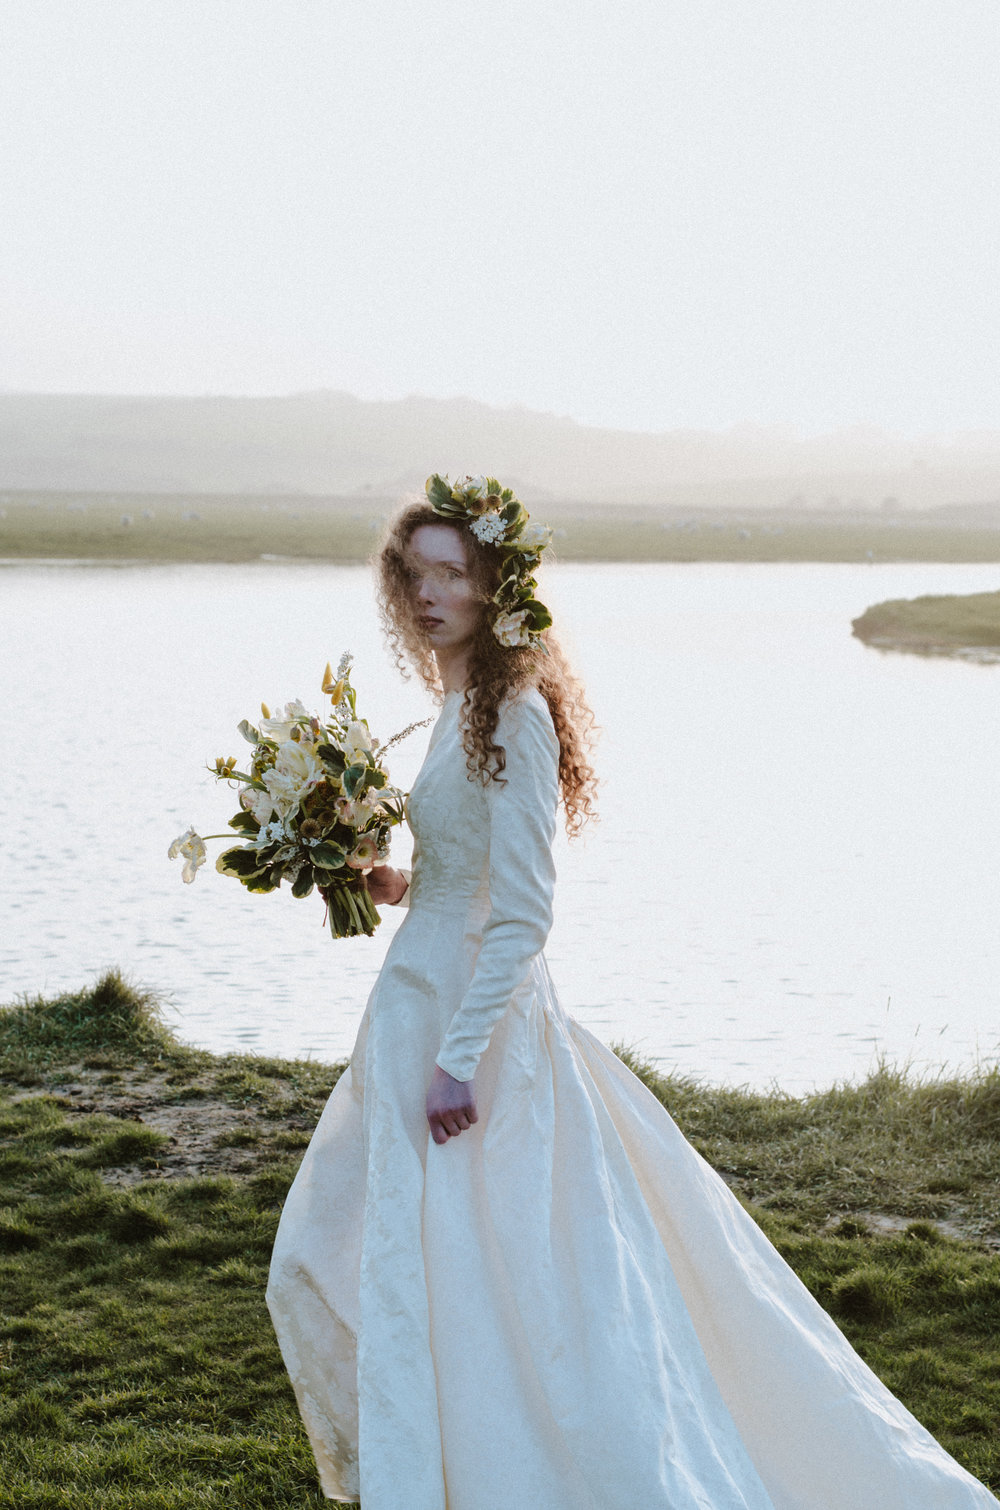 Bridal - Cuckmere Haven 2018 - Aiste Saulyte Photography-29.jpg